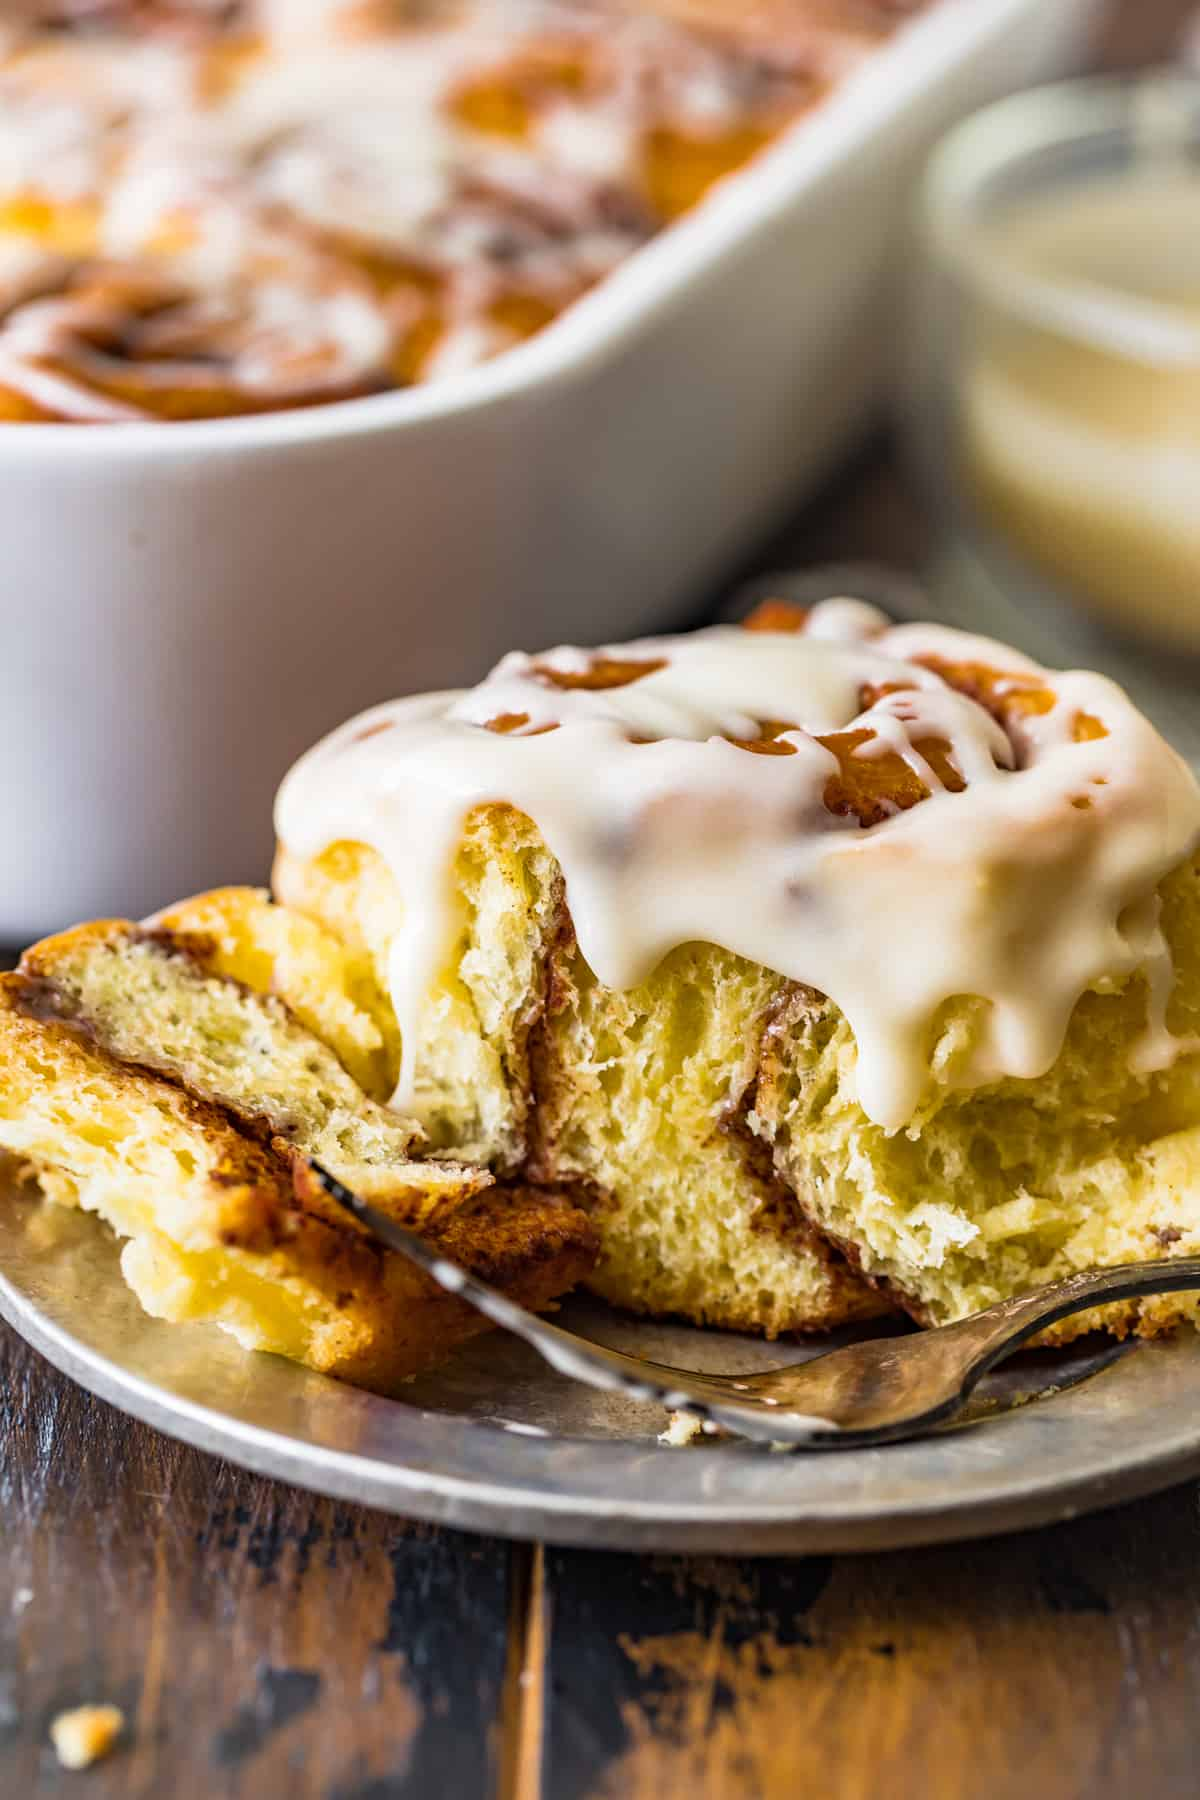 A Homemade Cinnamon Roll with icing on a plate